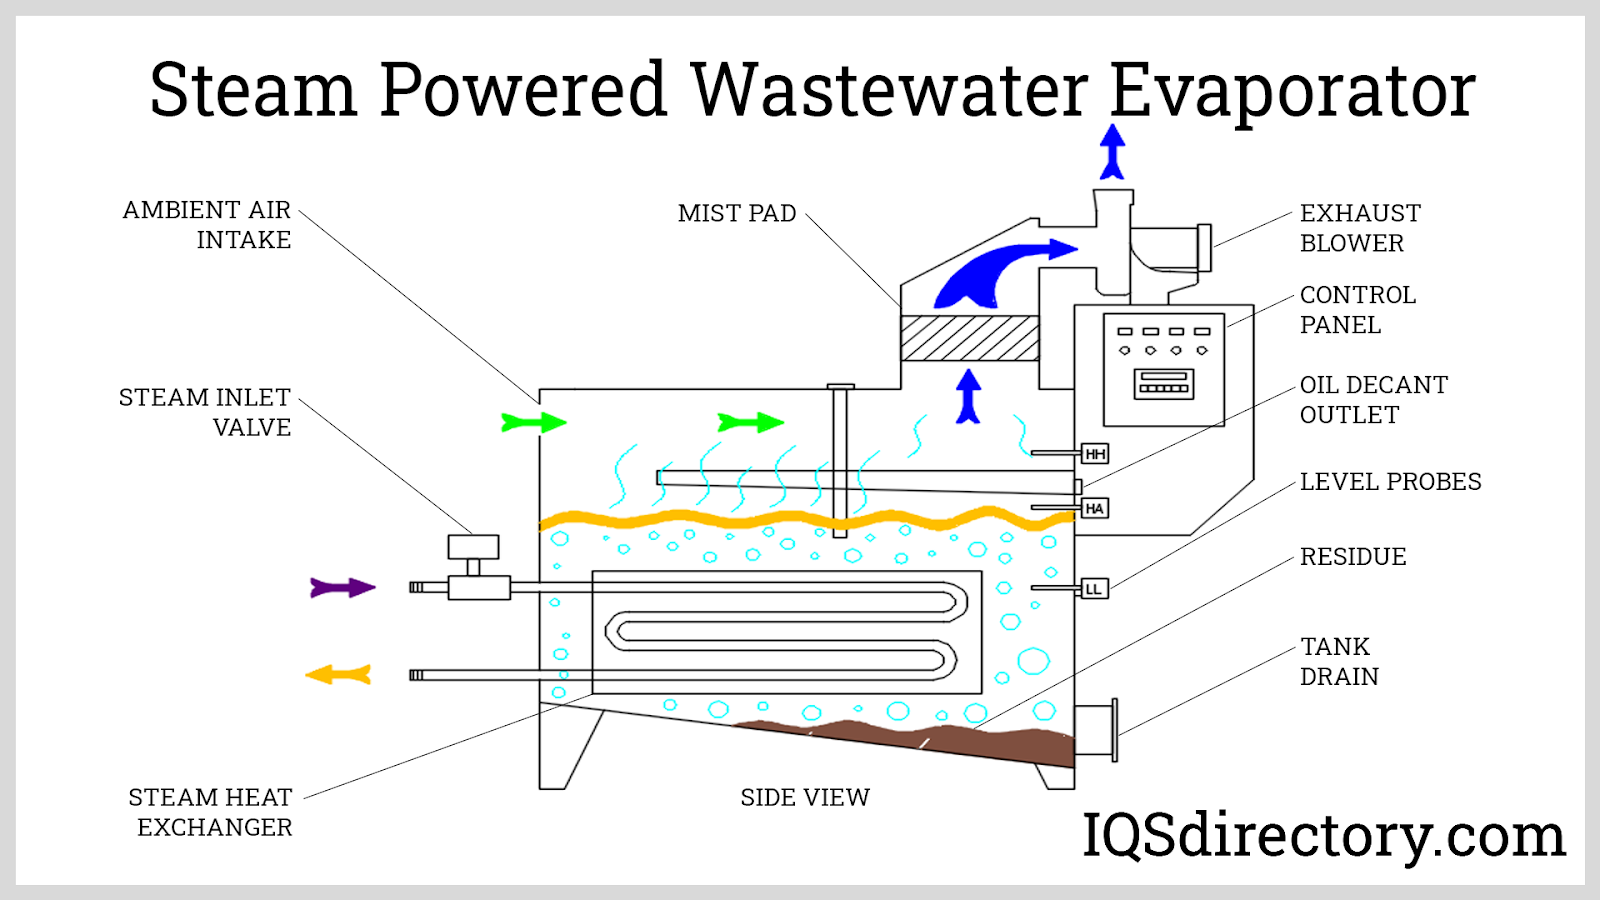 Steam Powered Wastewater Evaporator